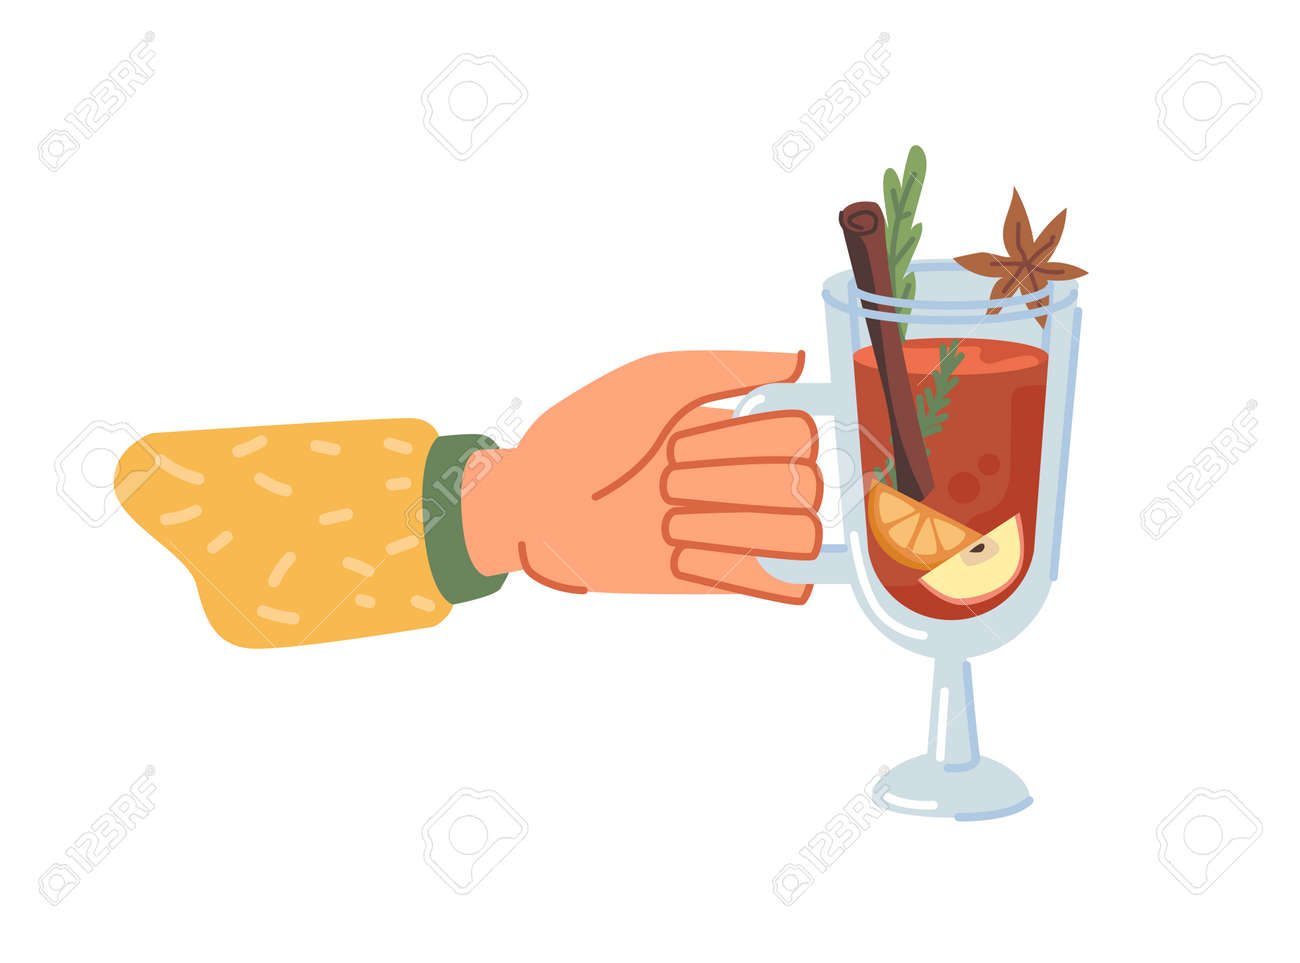 Hot beverage served in glass cup, isolated hand holding mulled wine with spices. Drink with anise and cinnamon stick, citrus slice and delicious flavor. Christmas menu. Vector in flat cartoon style - 171589775